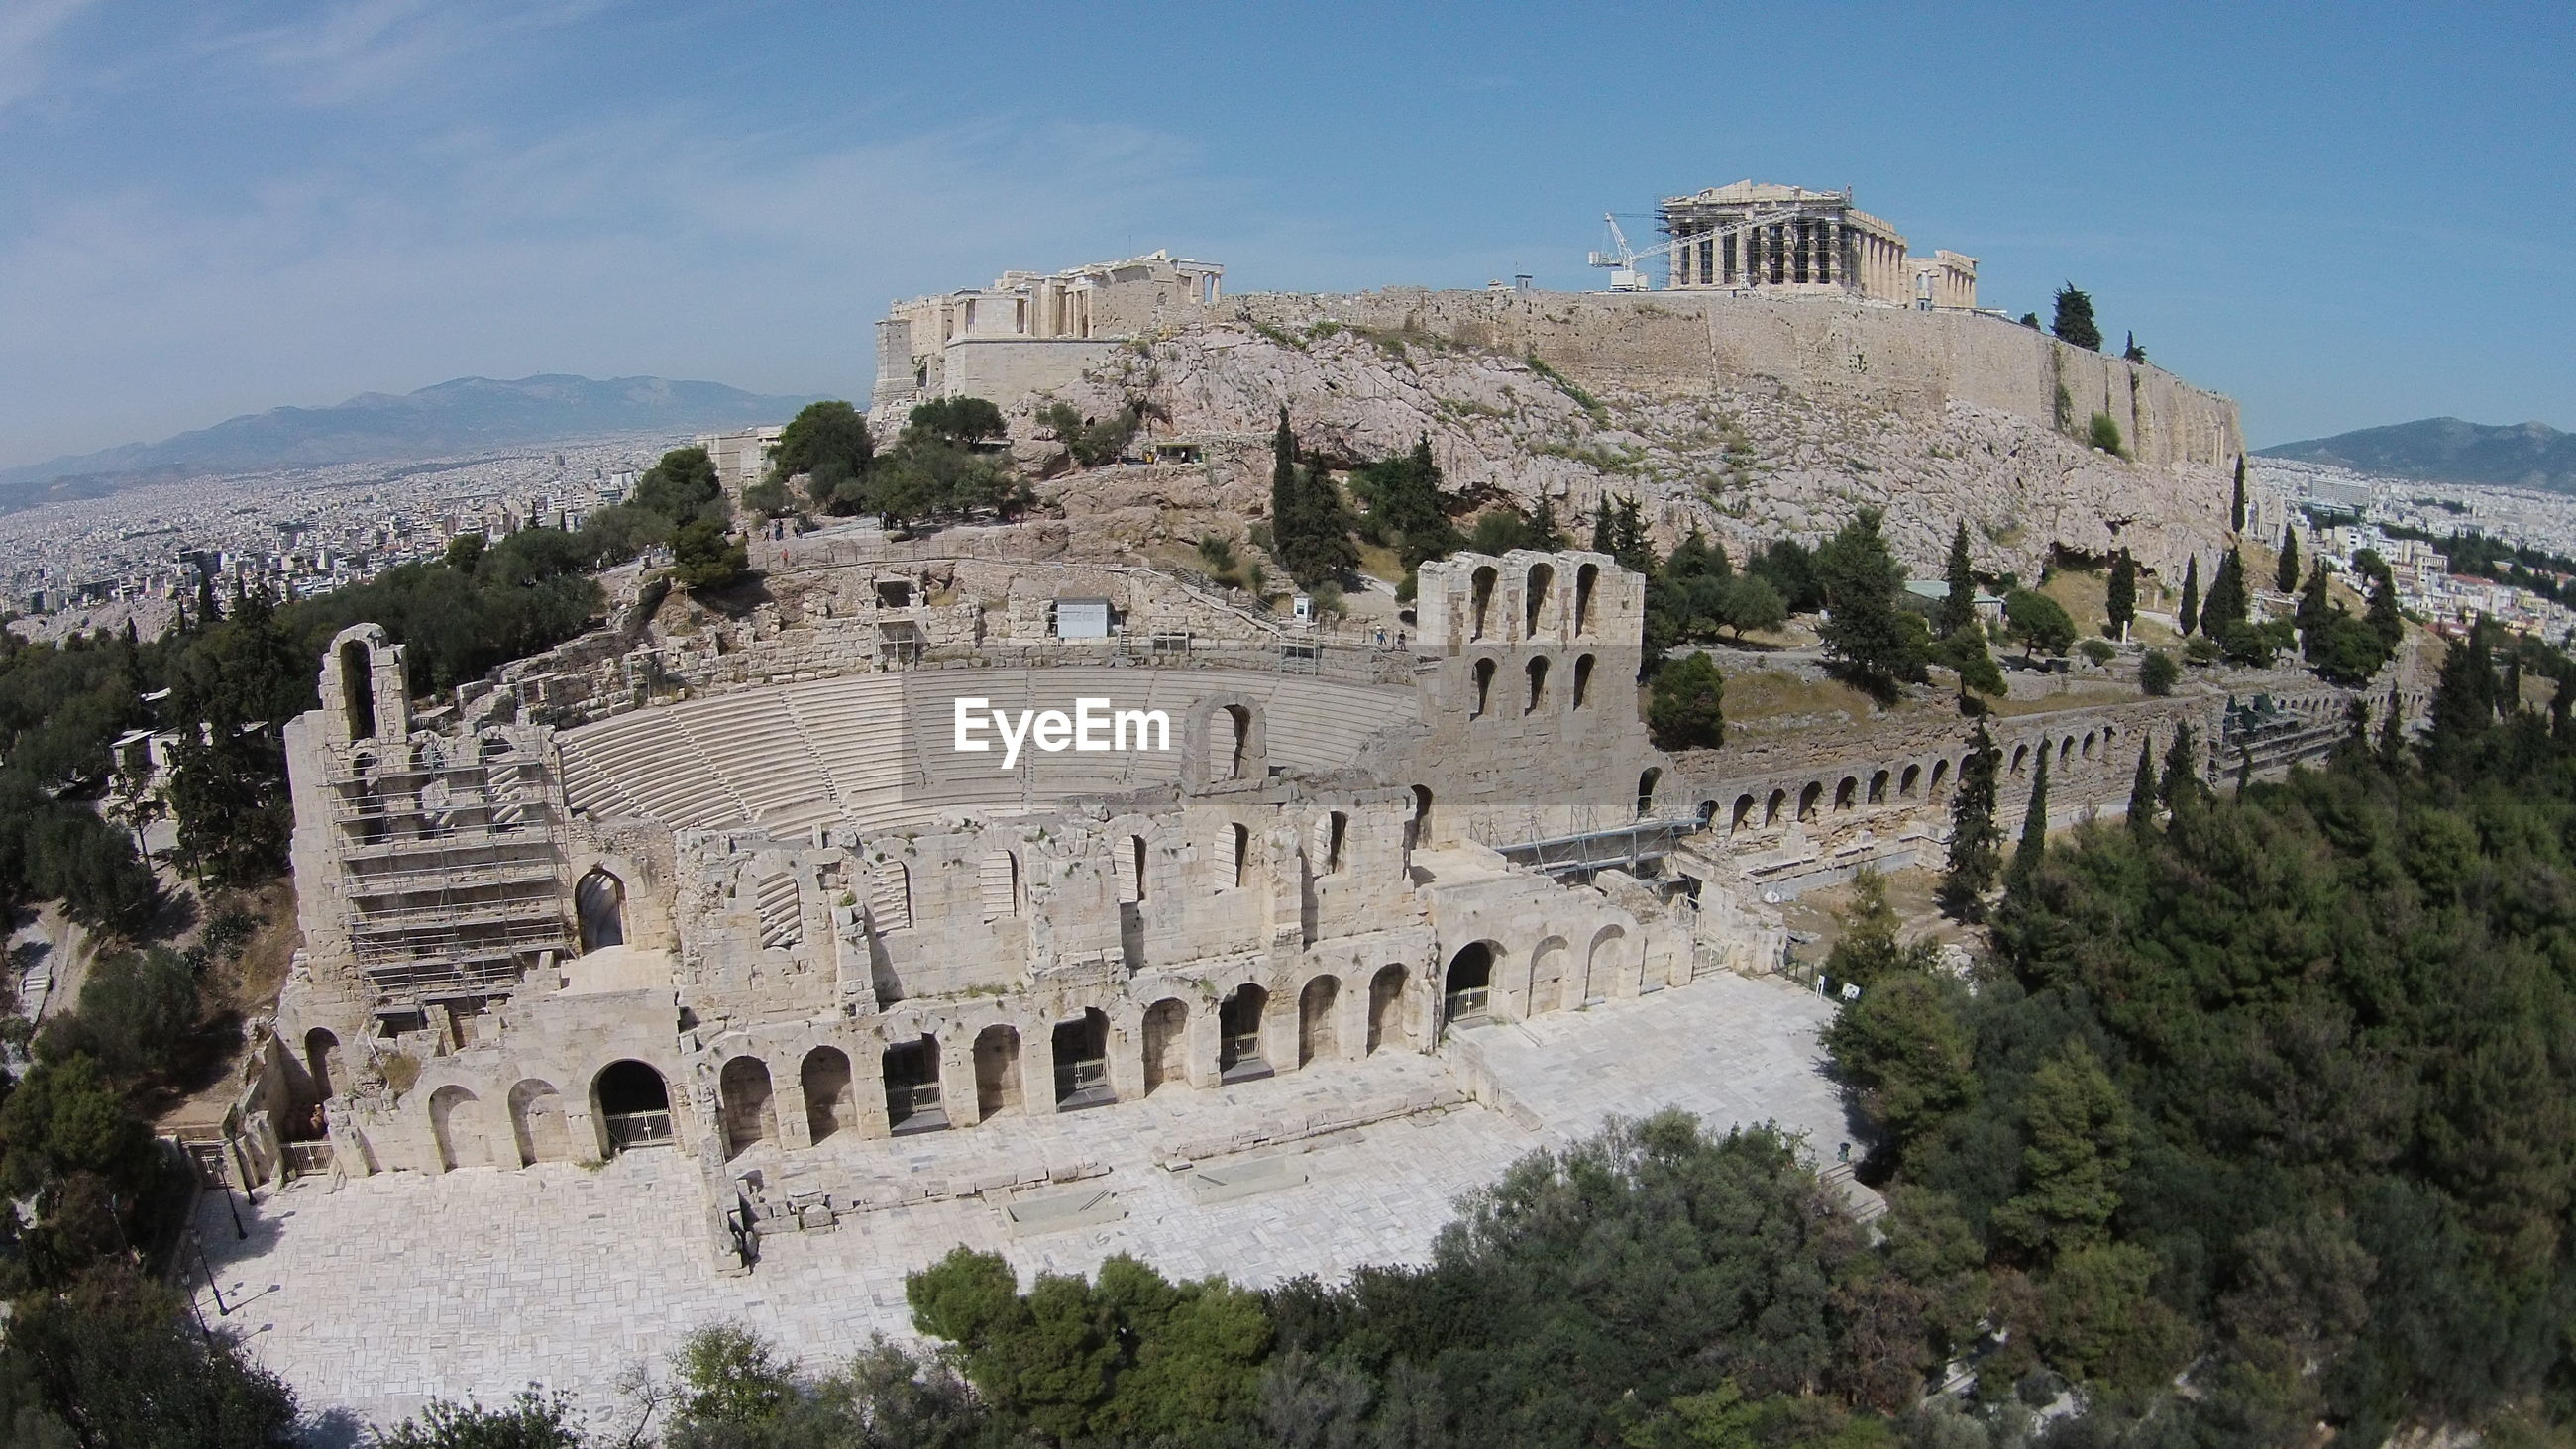 High angle of town with abandoned amphitheater in foreground